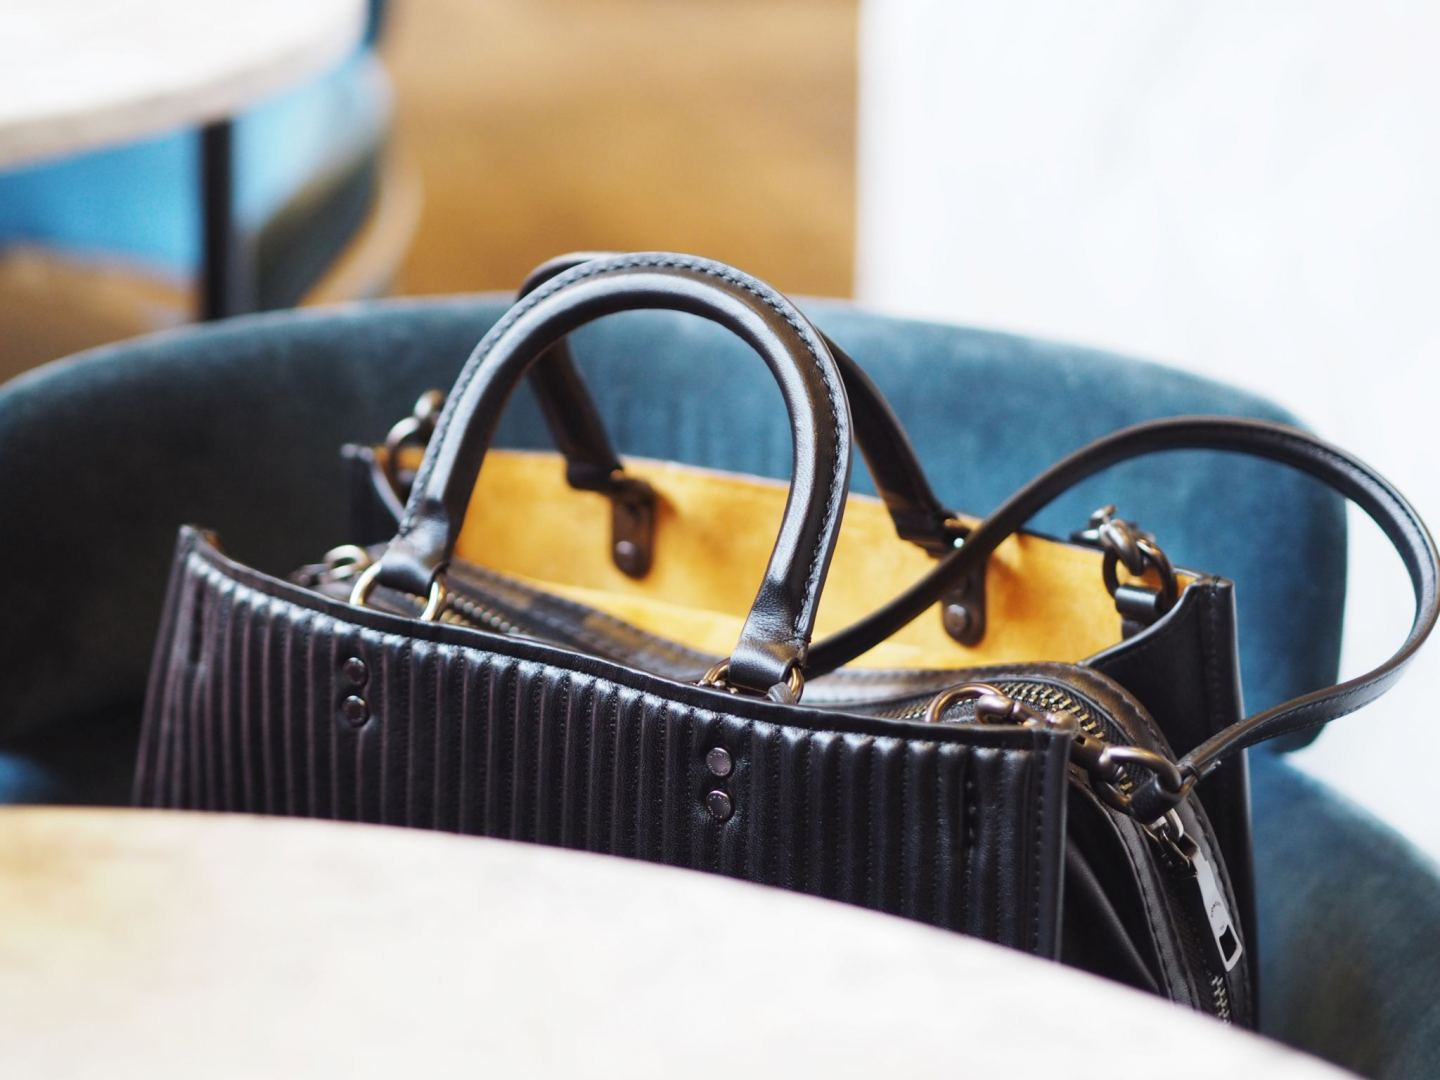 Review: Why The Coach Rogue Bag Is The PERFECT Tote Handbag!